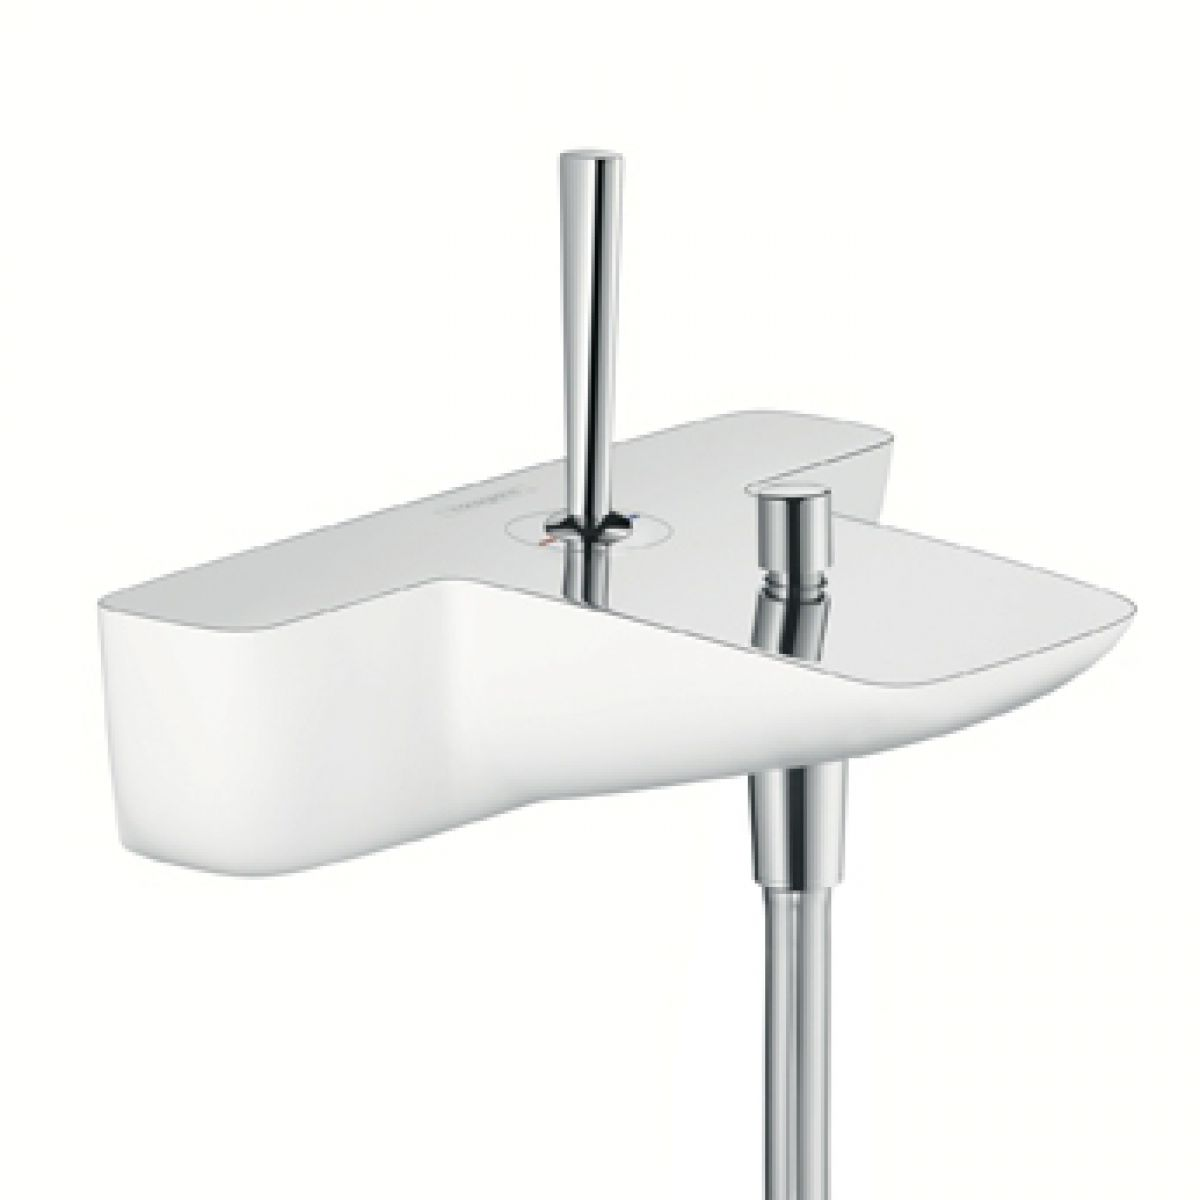 Hansgrohe puravida exposed bath shower mixer uk bathrooms for Hansgrohe puravida